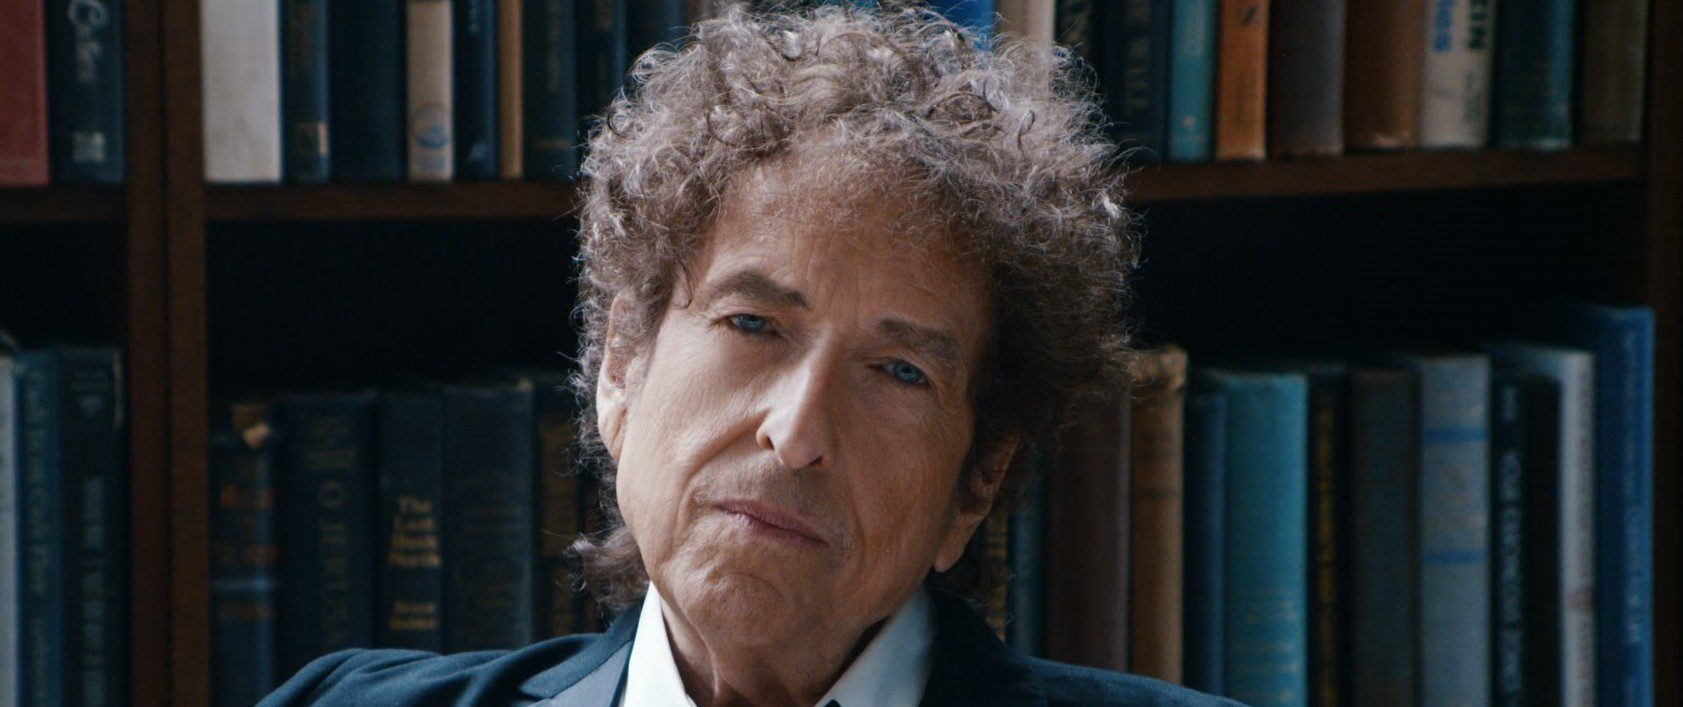 BOB DYLAN INTERVISTA ROCK, ULTIMO ALBUM